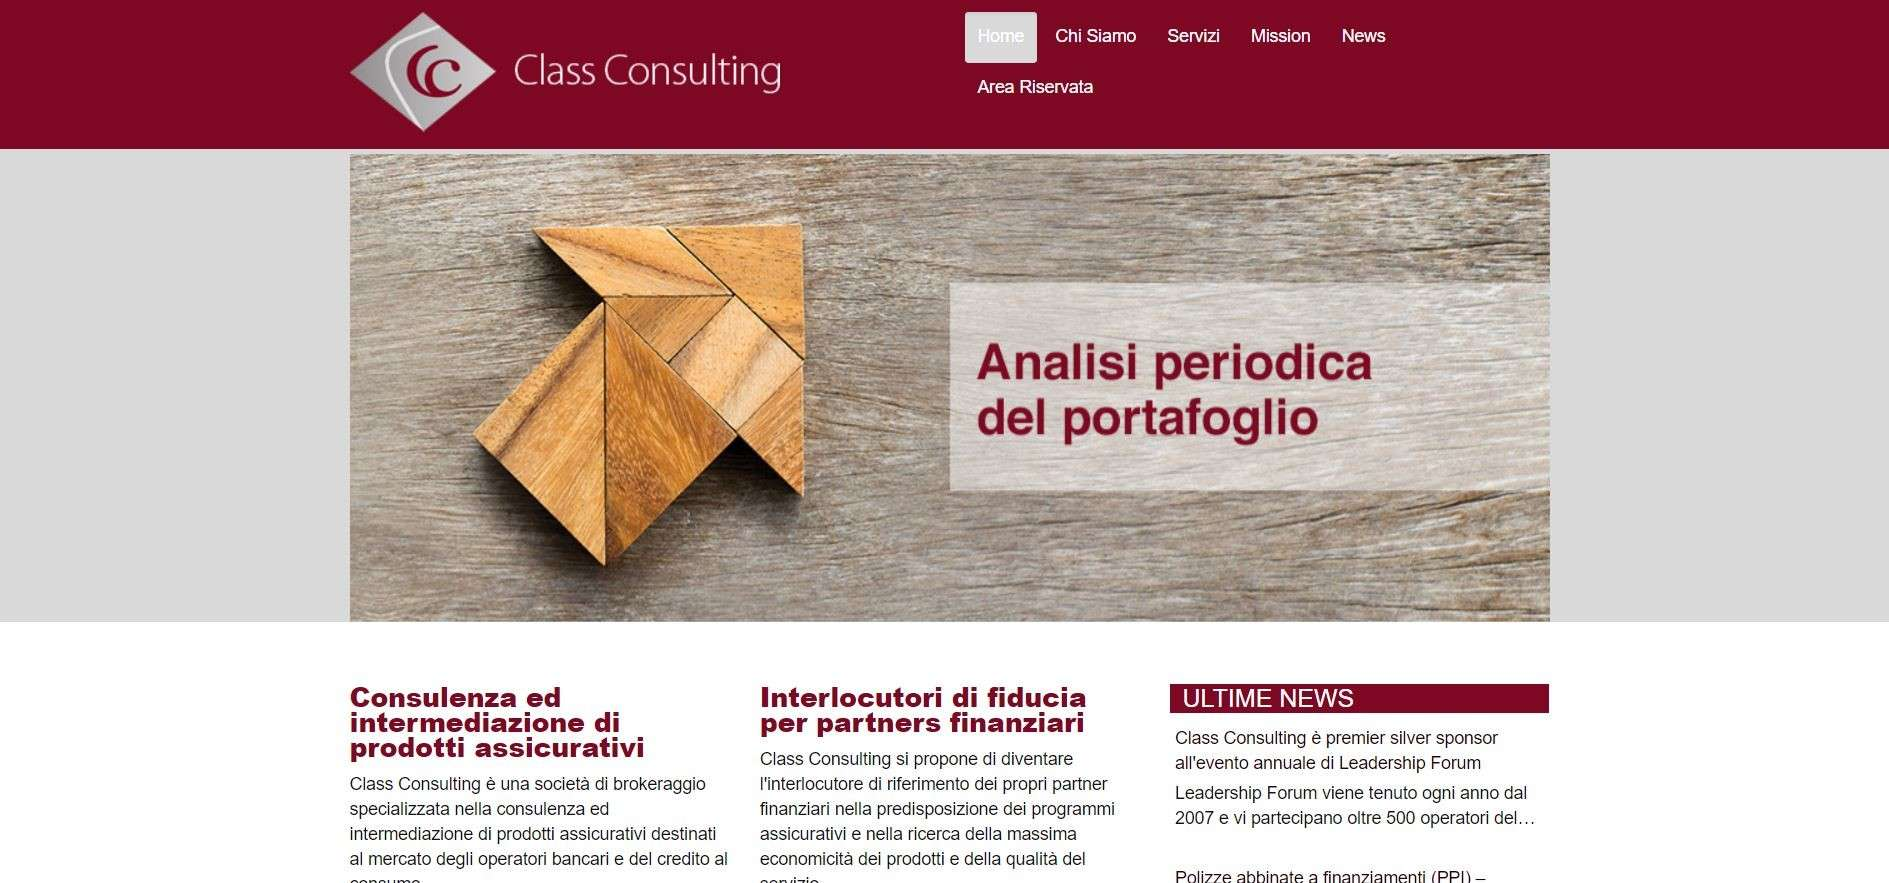 Class Consulting